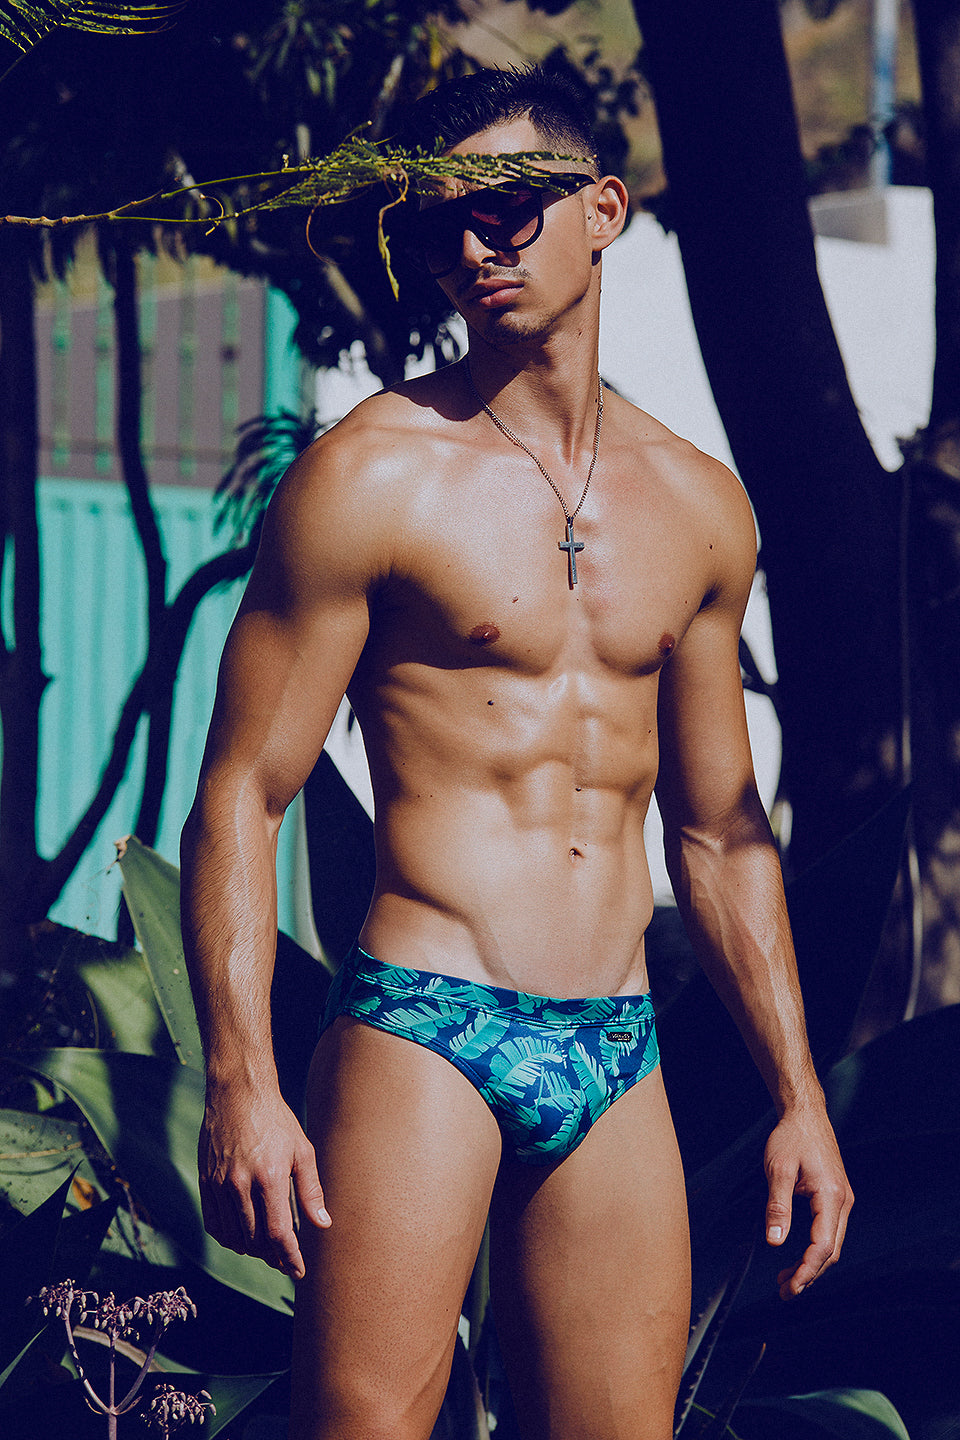 It's About The Man - Adrian C Martin - Model Mikel Roman Wears OCEANICO Swimwear